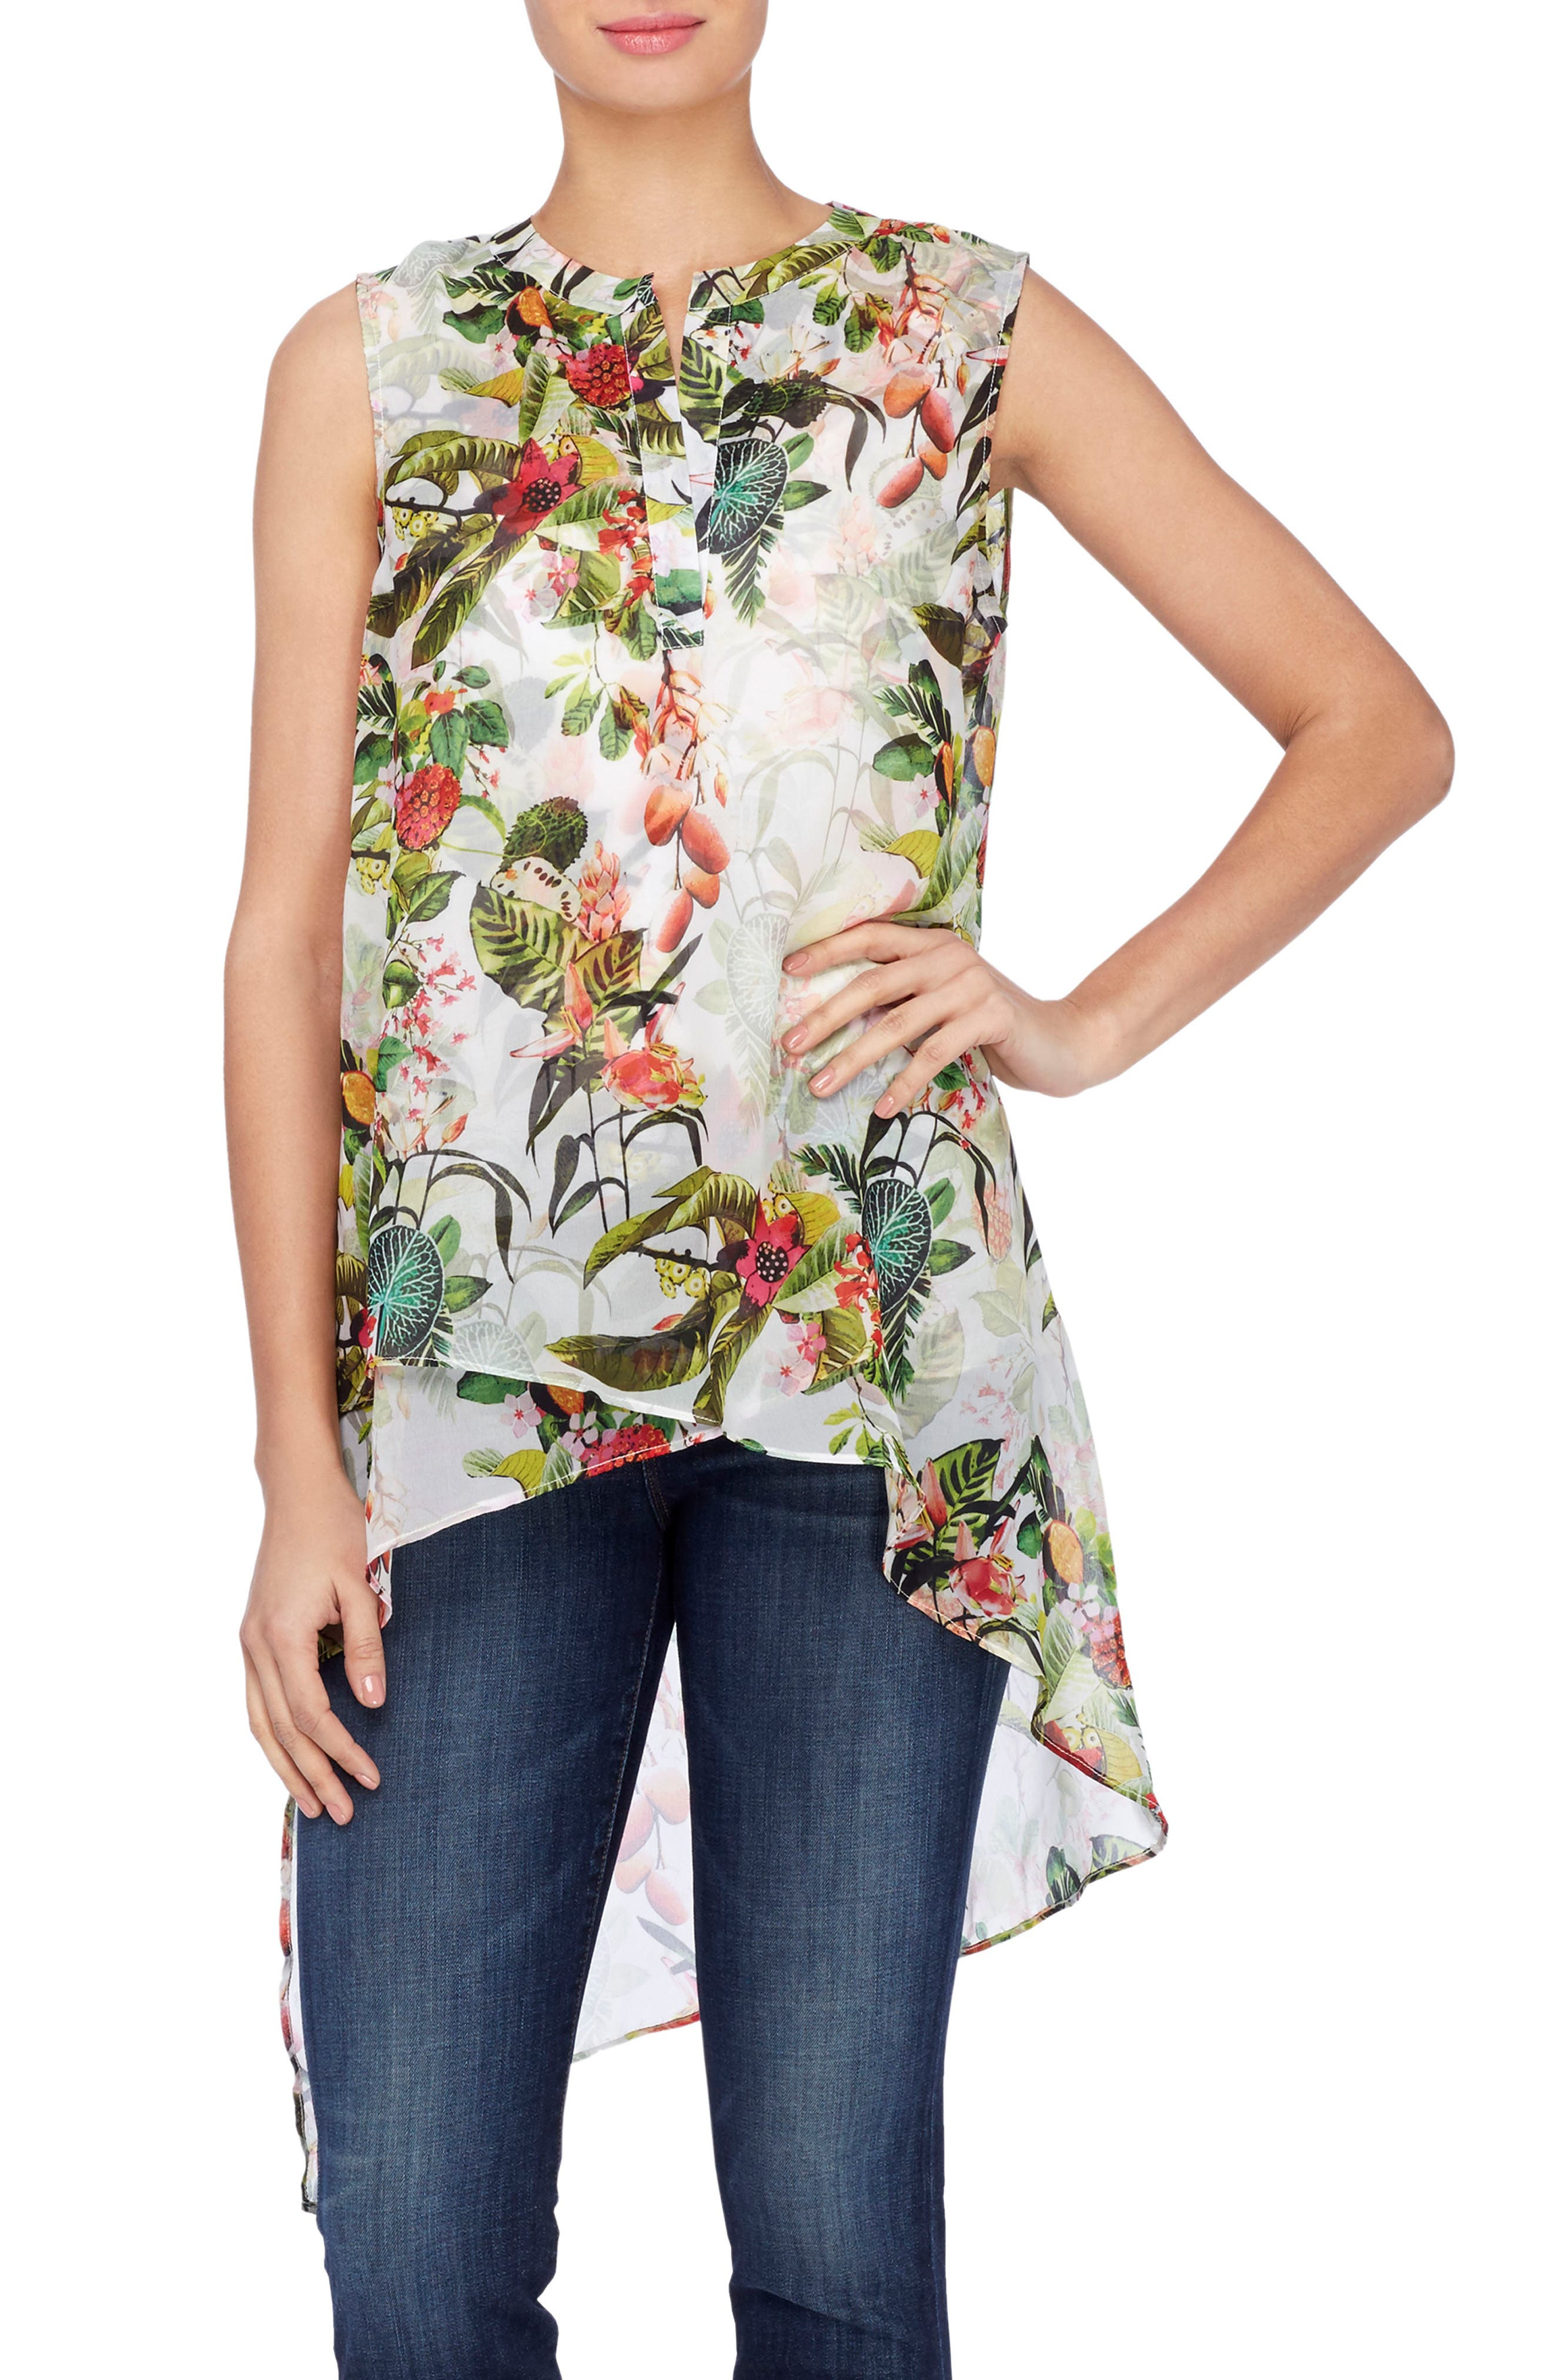 Livy Print High/Low Tunic Blouse,                         Main,                         color, 300